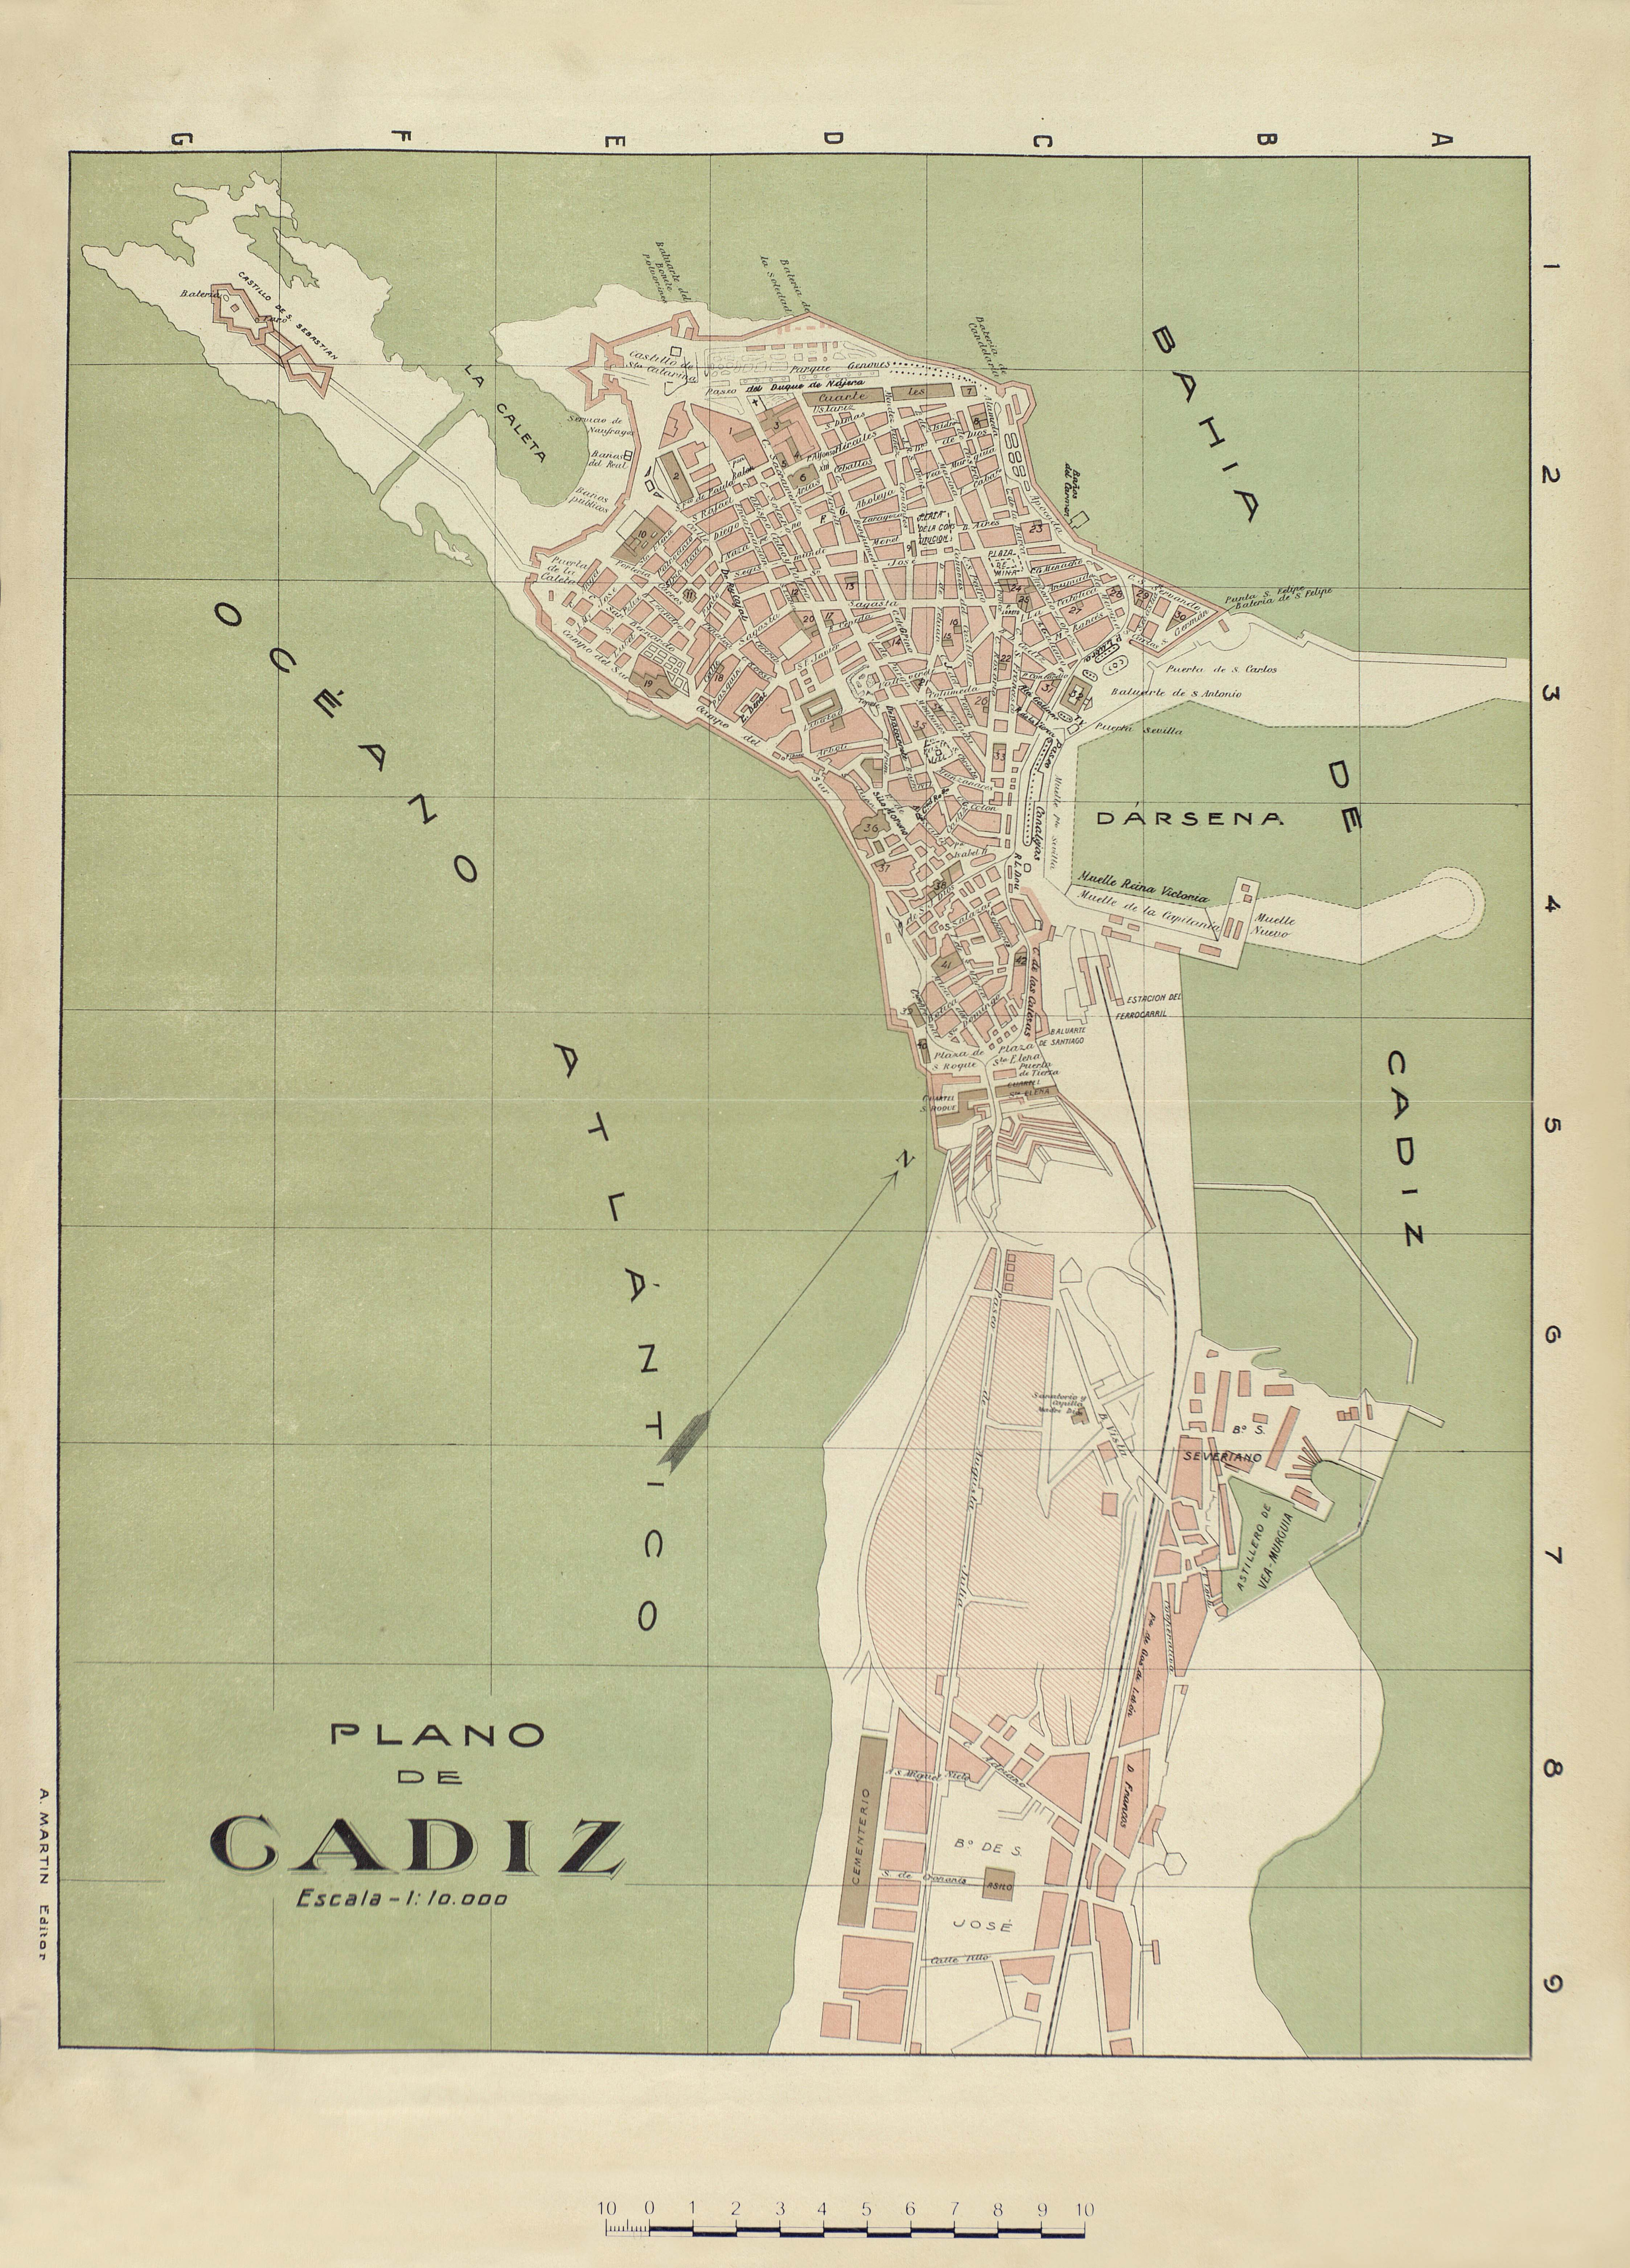 Map of Cádiz